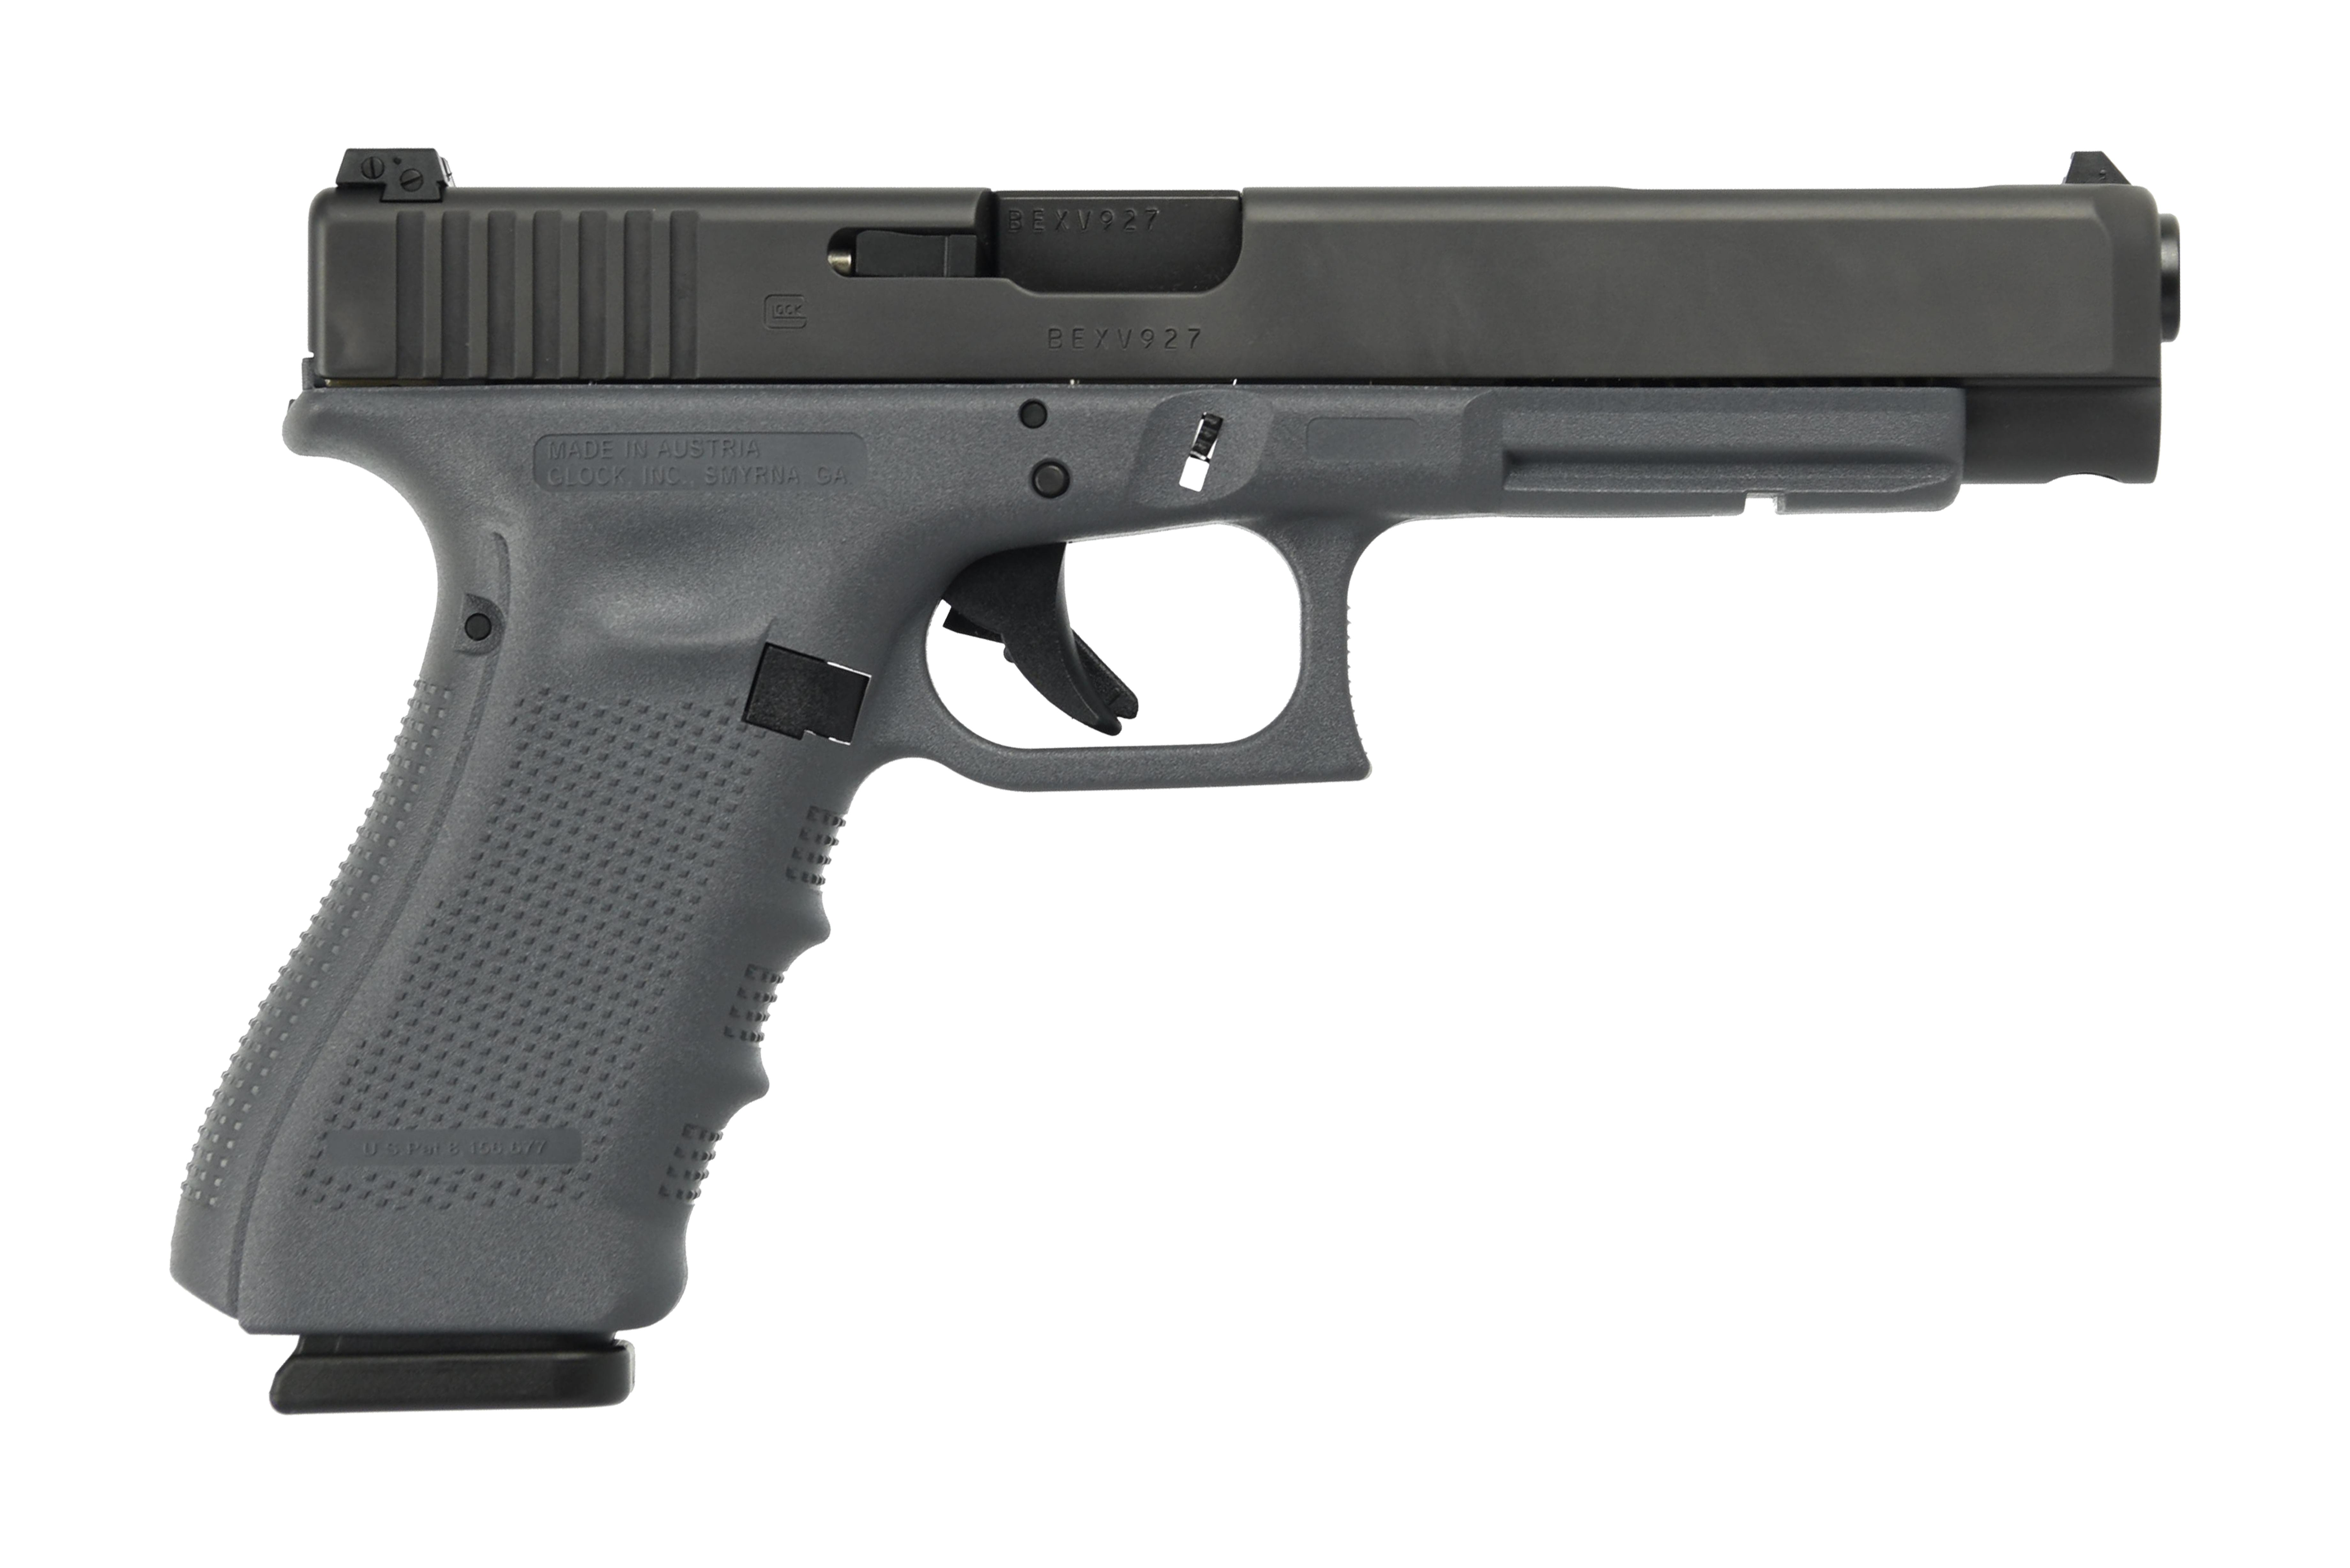 G35 G4 GRAY 40SW 15+1 5.3 AS - 3-15RD MAGS | EXTENDED SLIDE